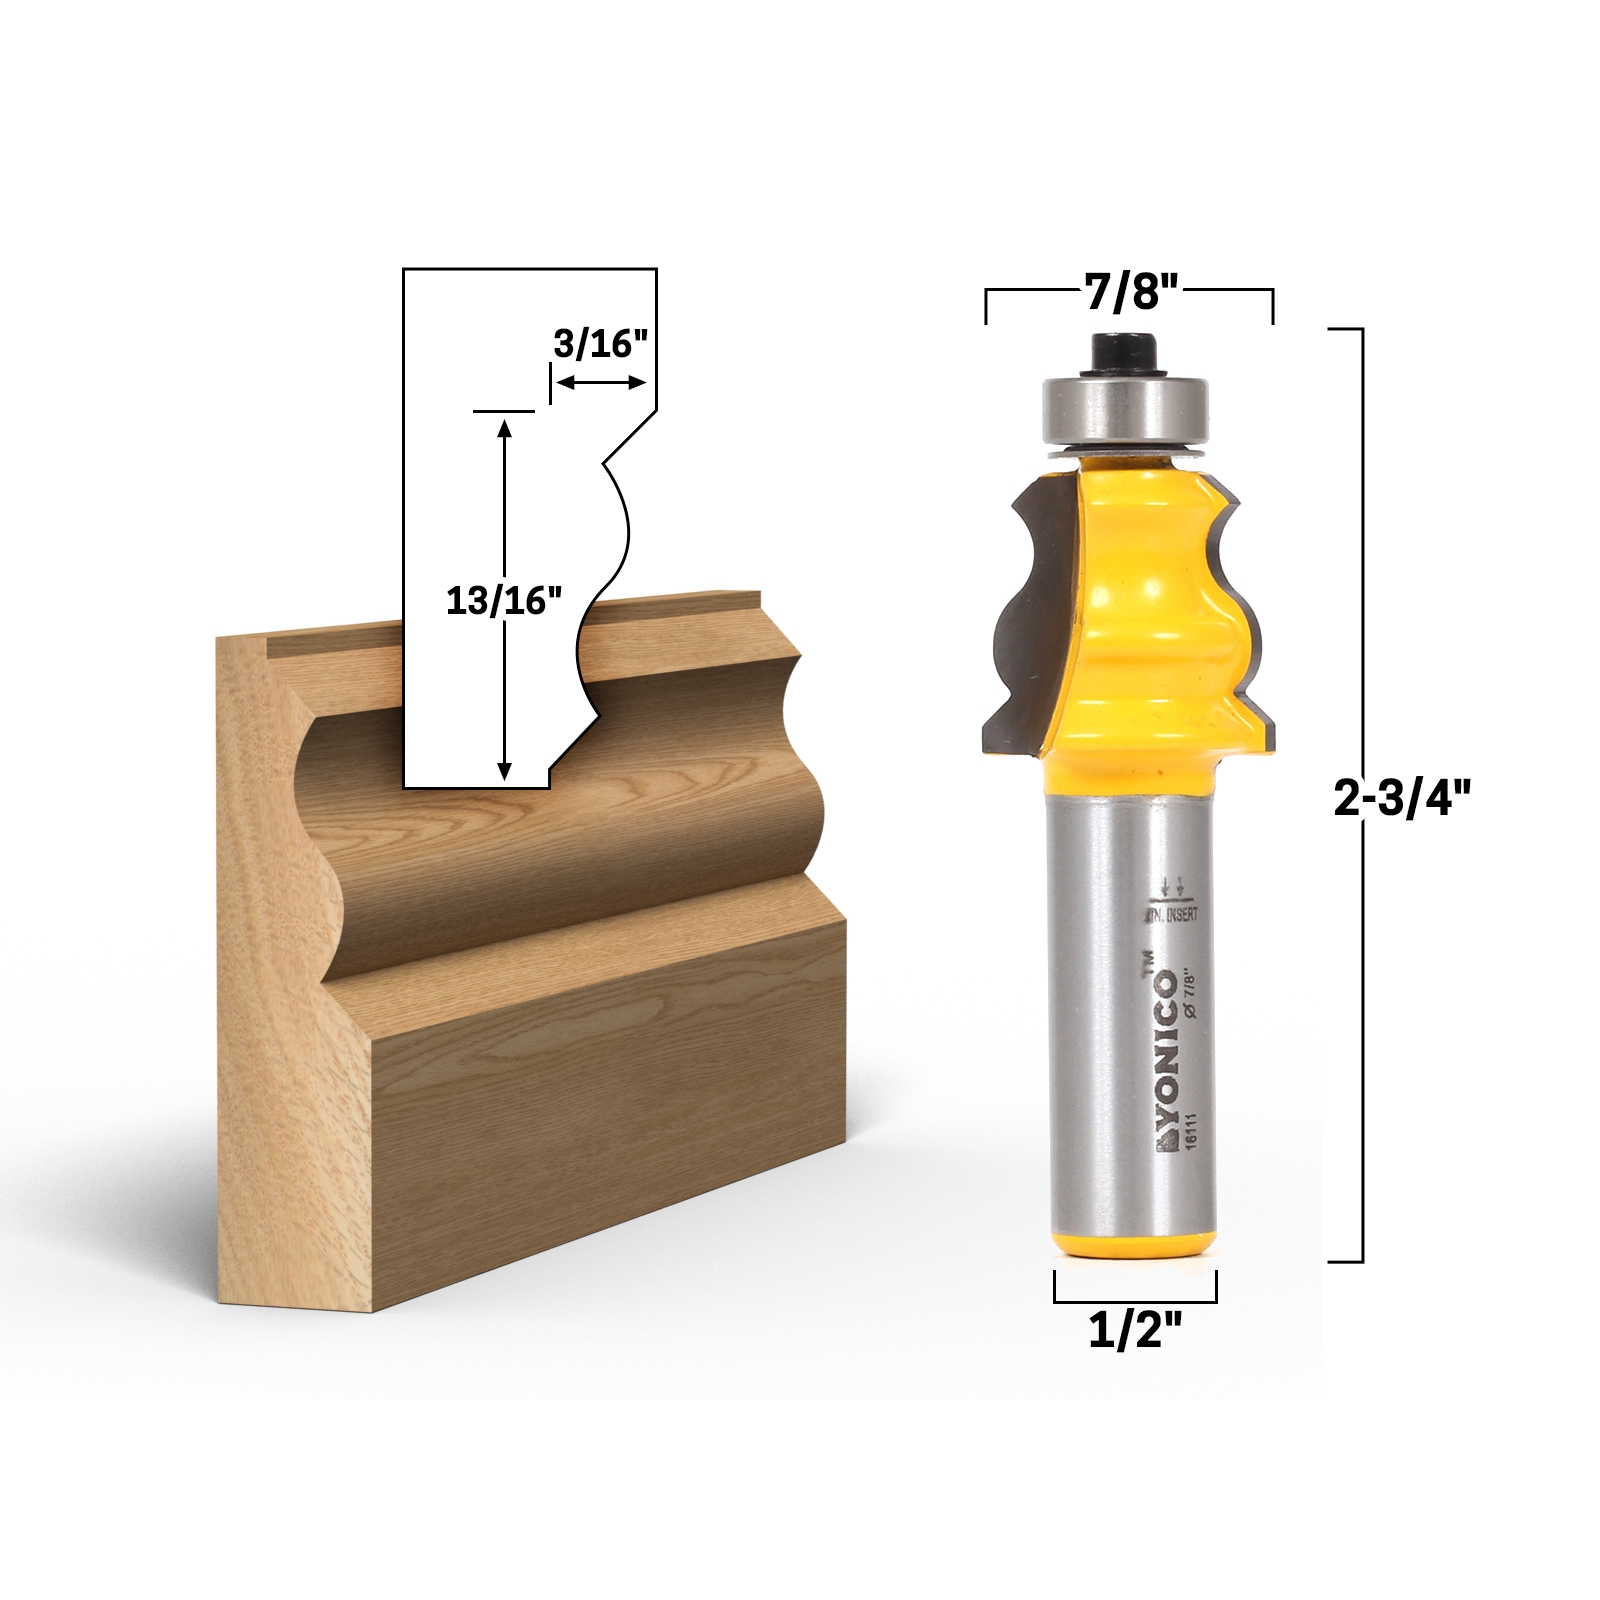 Small standard crown cap molding router bit 1 2 shank for Standard crown molding size